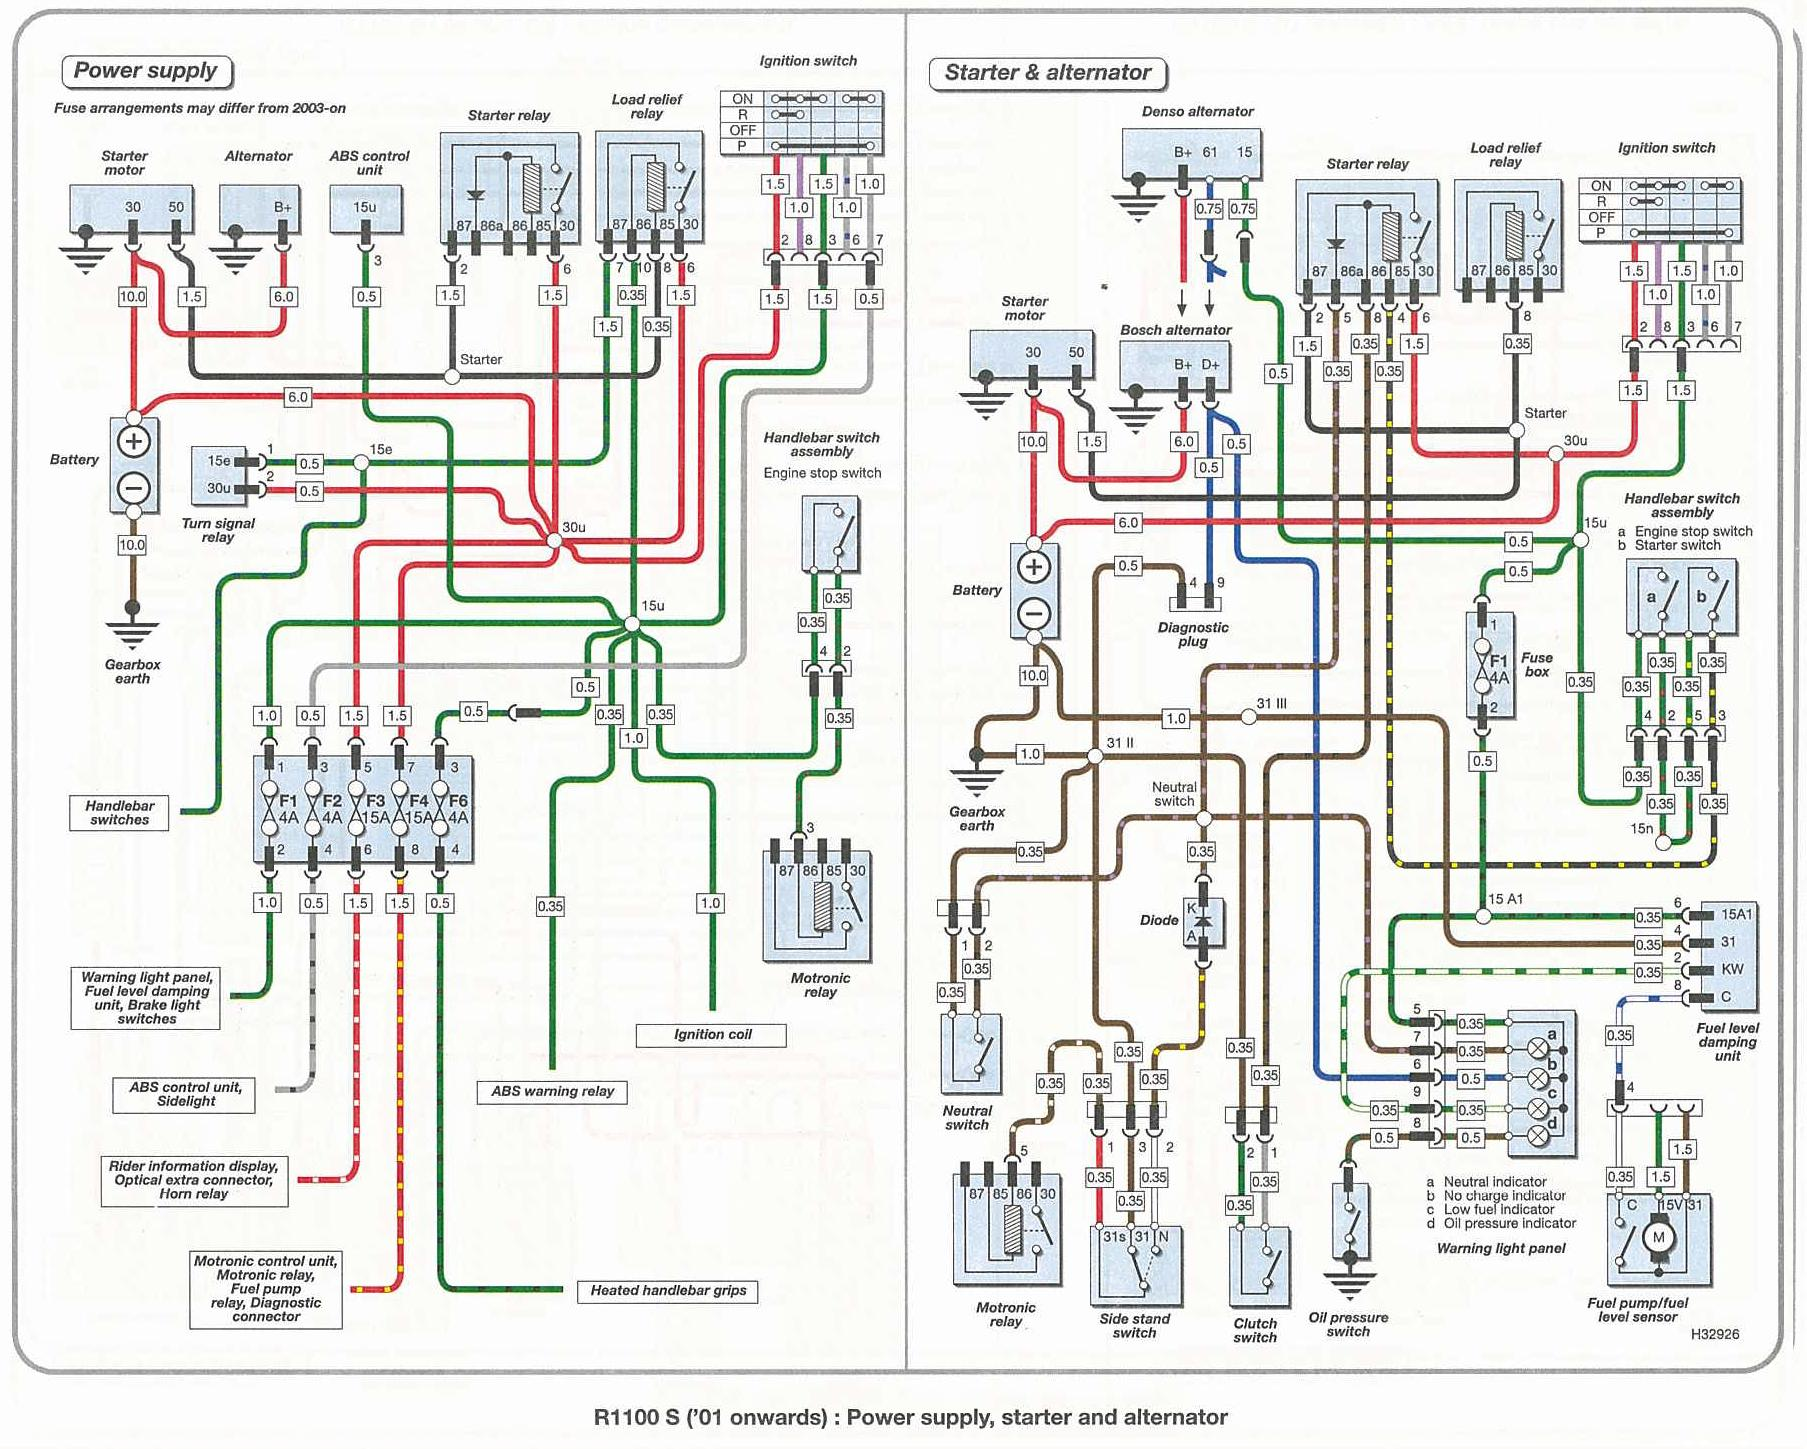 wiring05 bmw wiring diagram bmw wiring diagrams e39 \u2022 wiring diagrams j wiring diagram for 2005 bmw f650gs at suagrazia.org